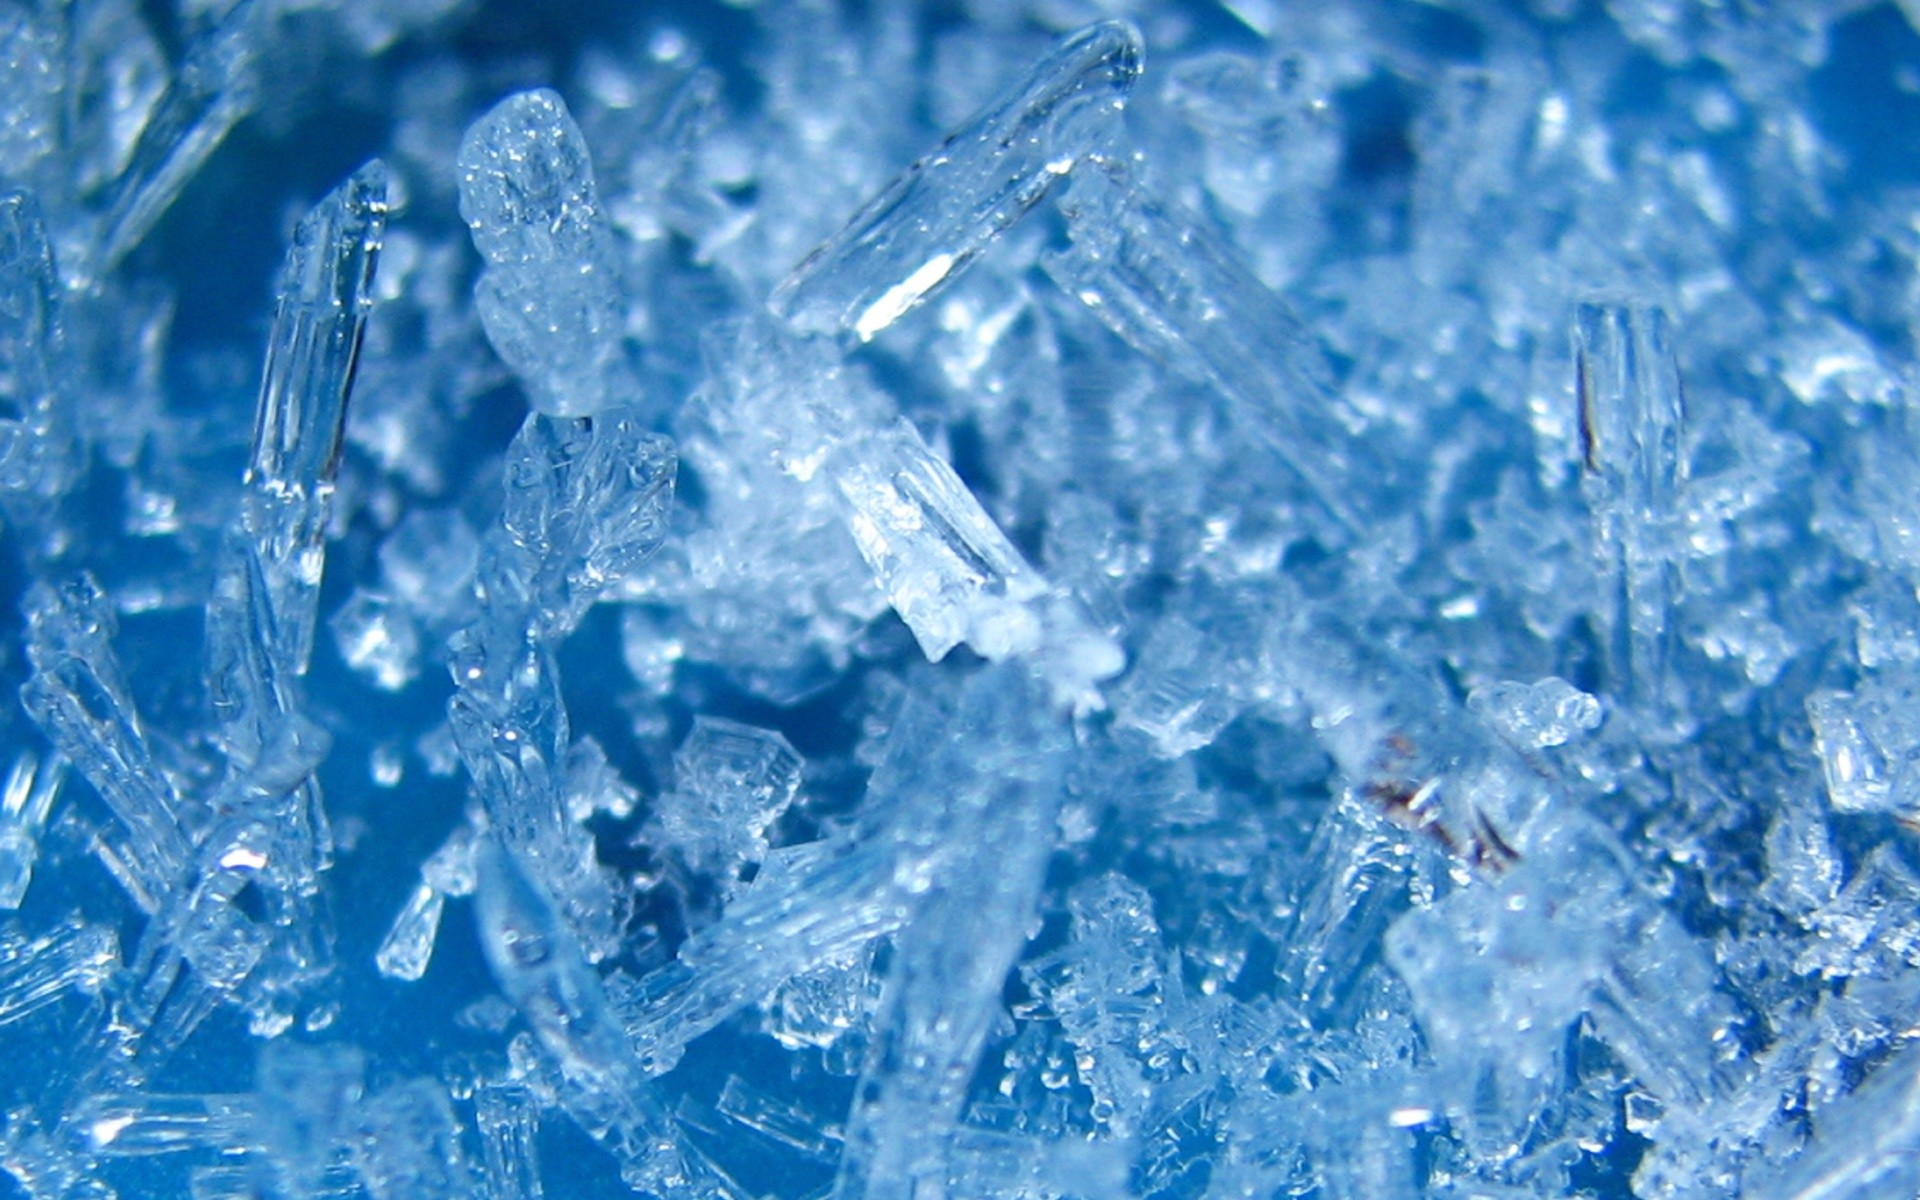 1920x1200 Ice crystals  wallpaper download page 672121